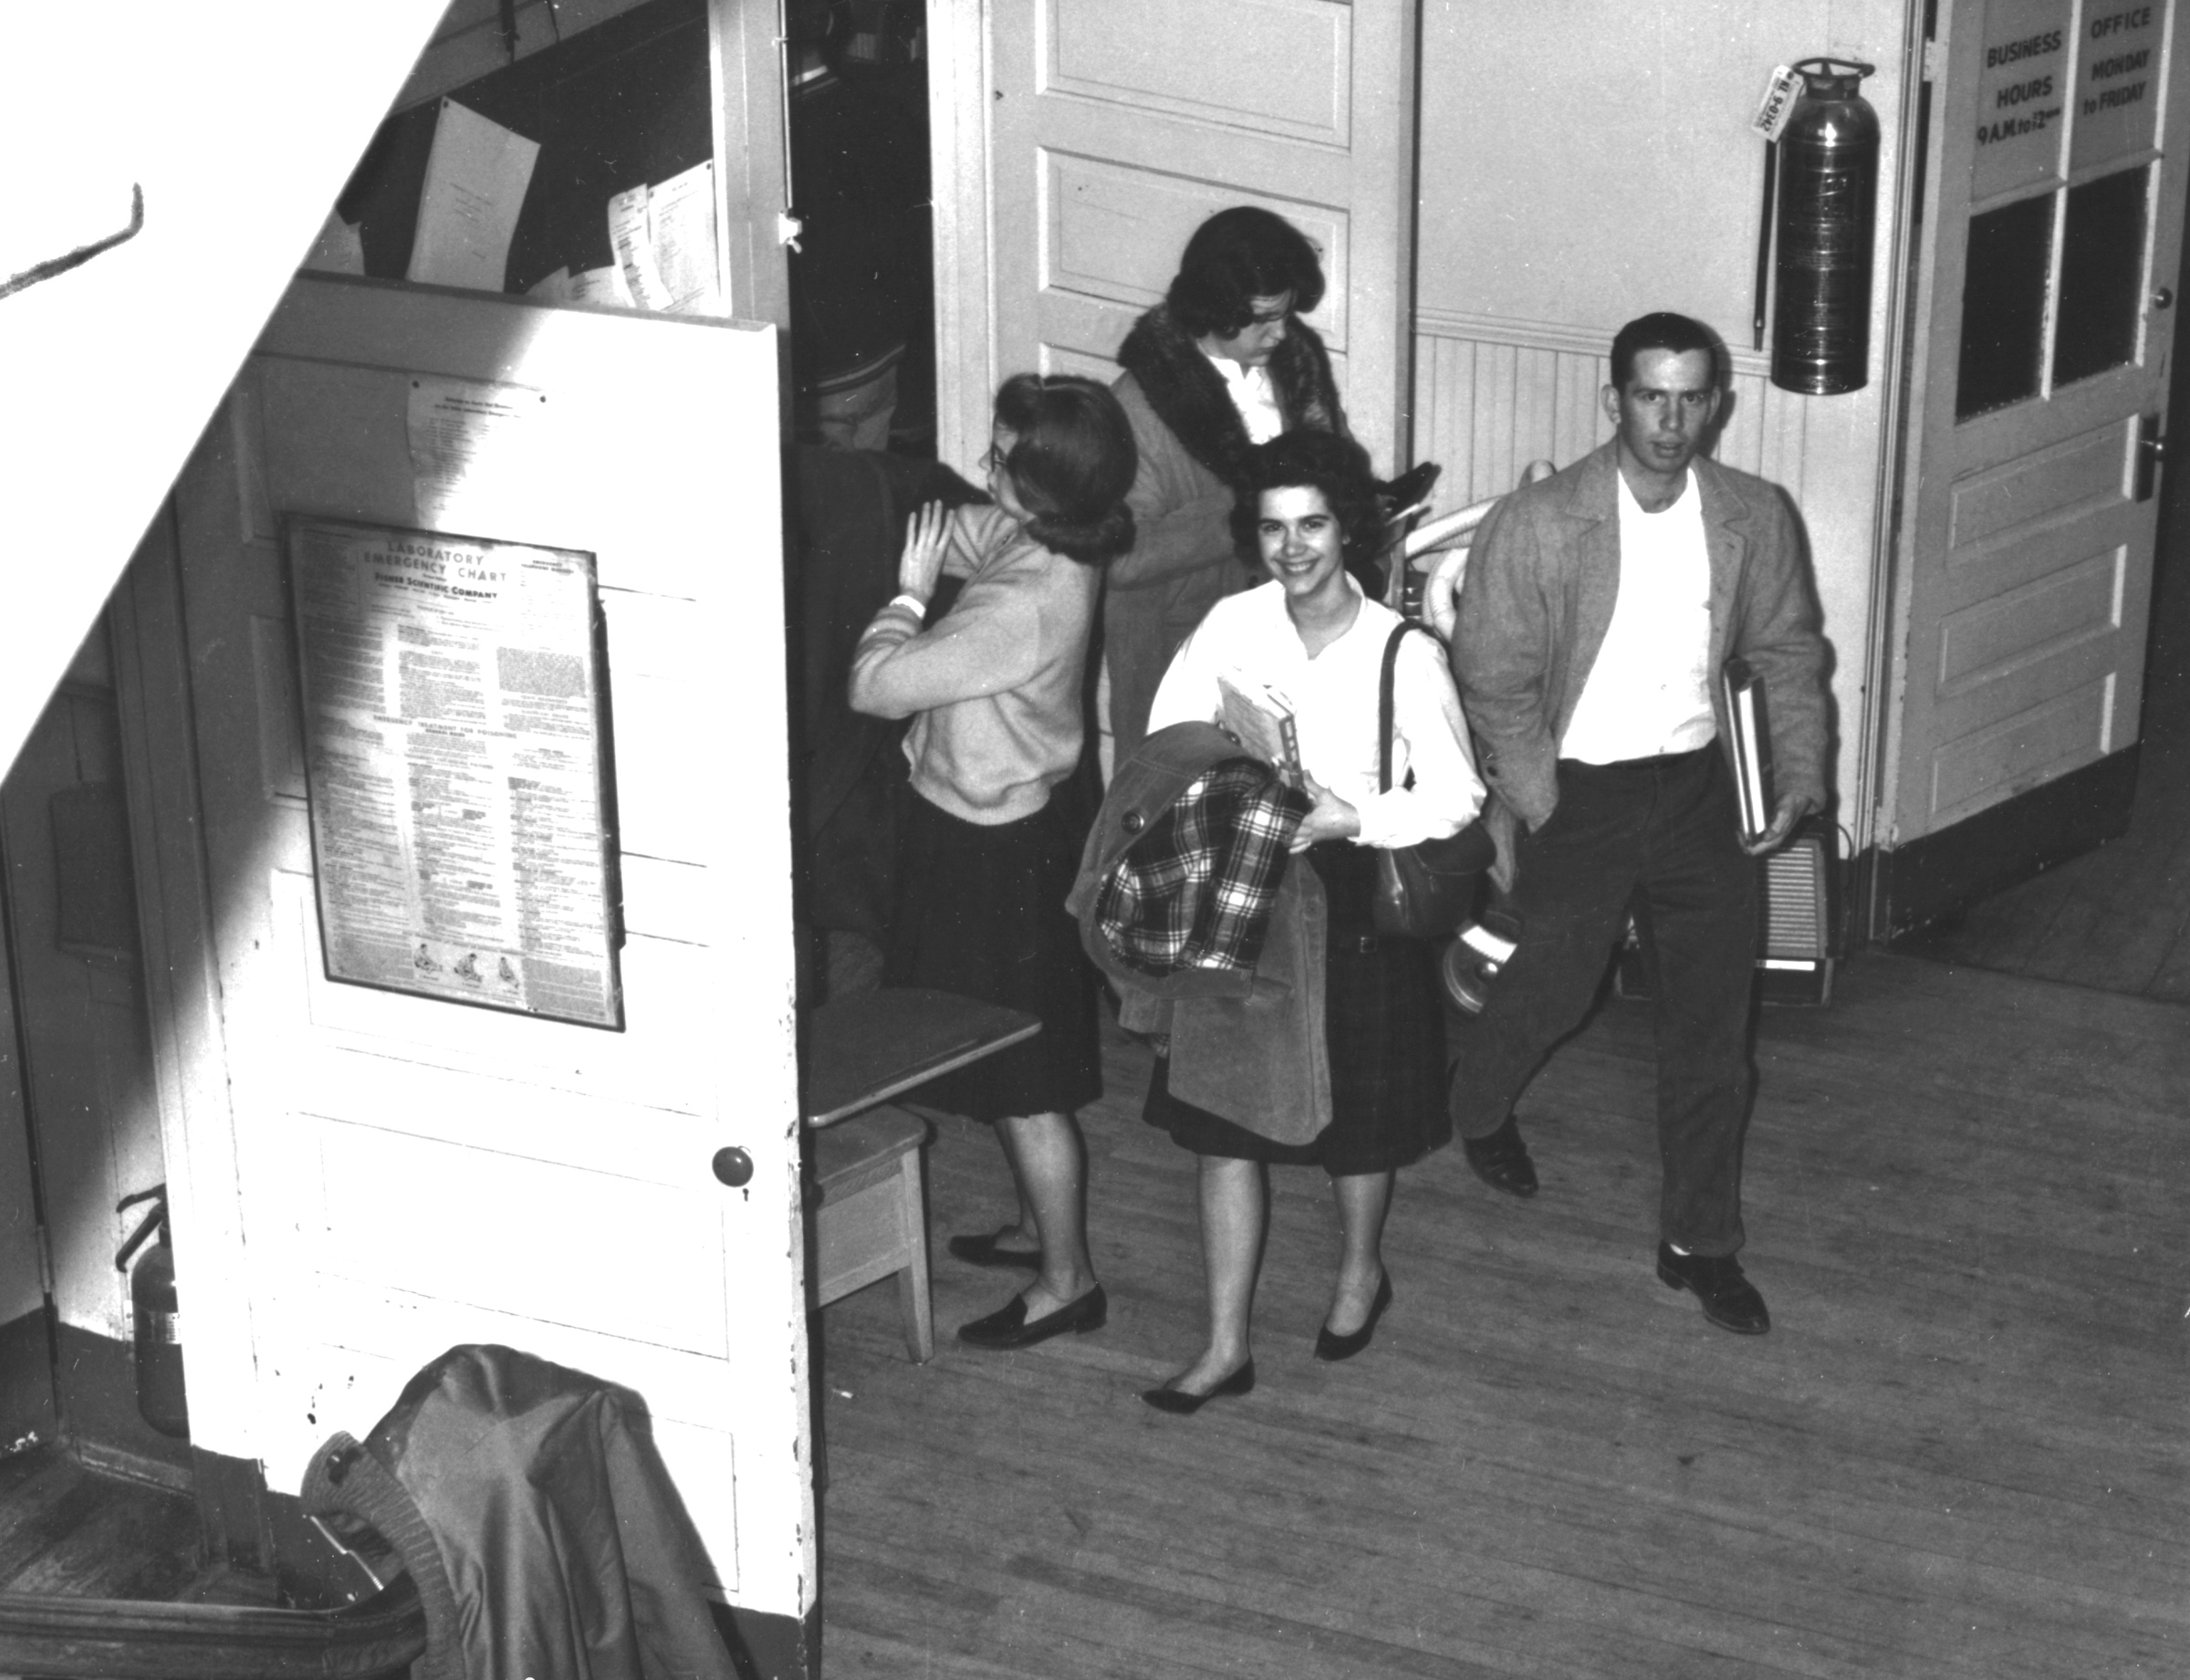 Marianne Torregrossa, Kathy Parnell, Anne Walker, [and] Jim Pracht getting out of 5 o'clock math class, Bailey's Crossroads.